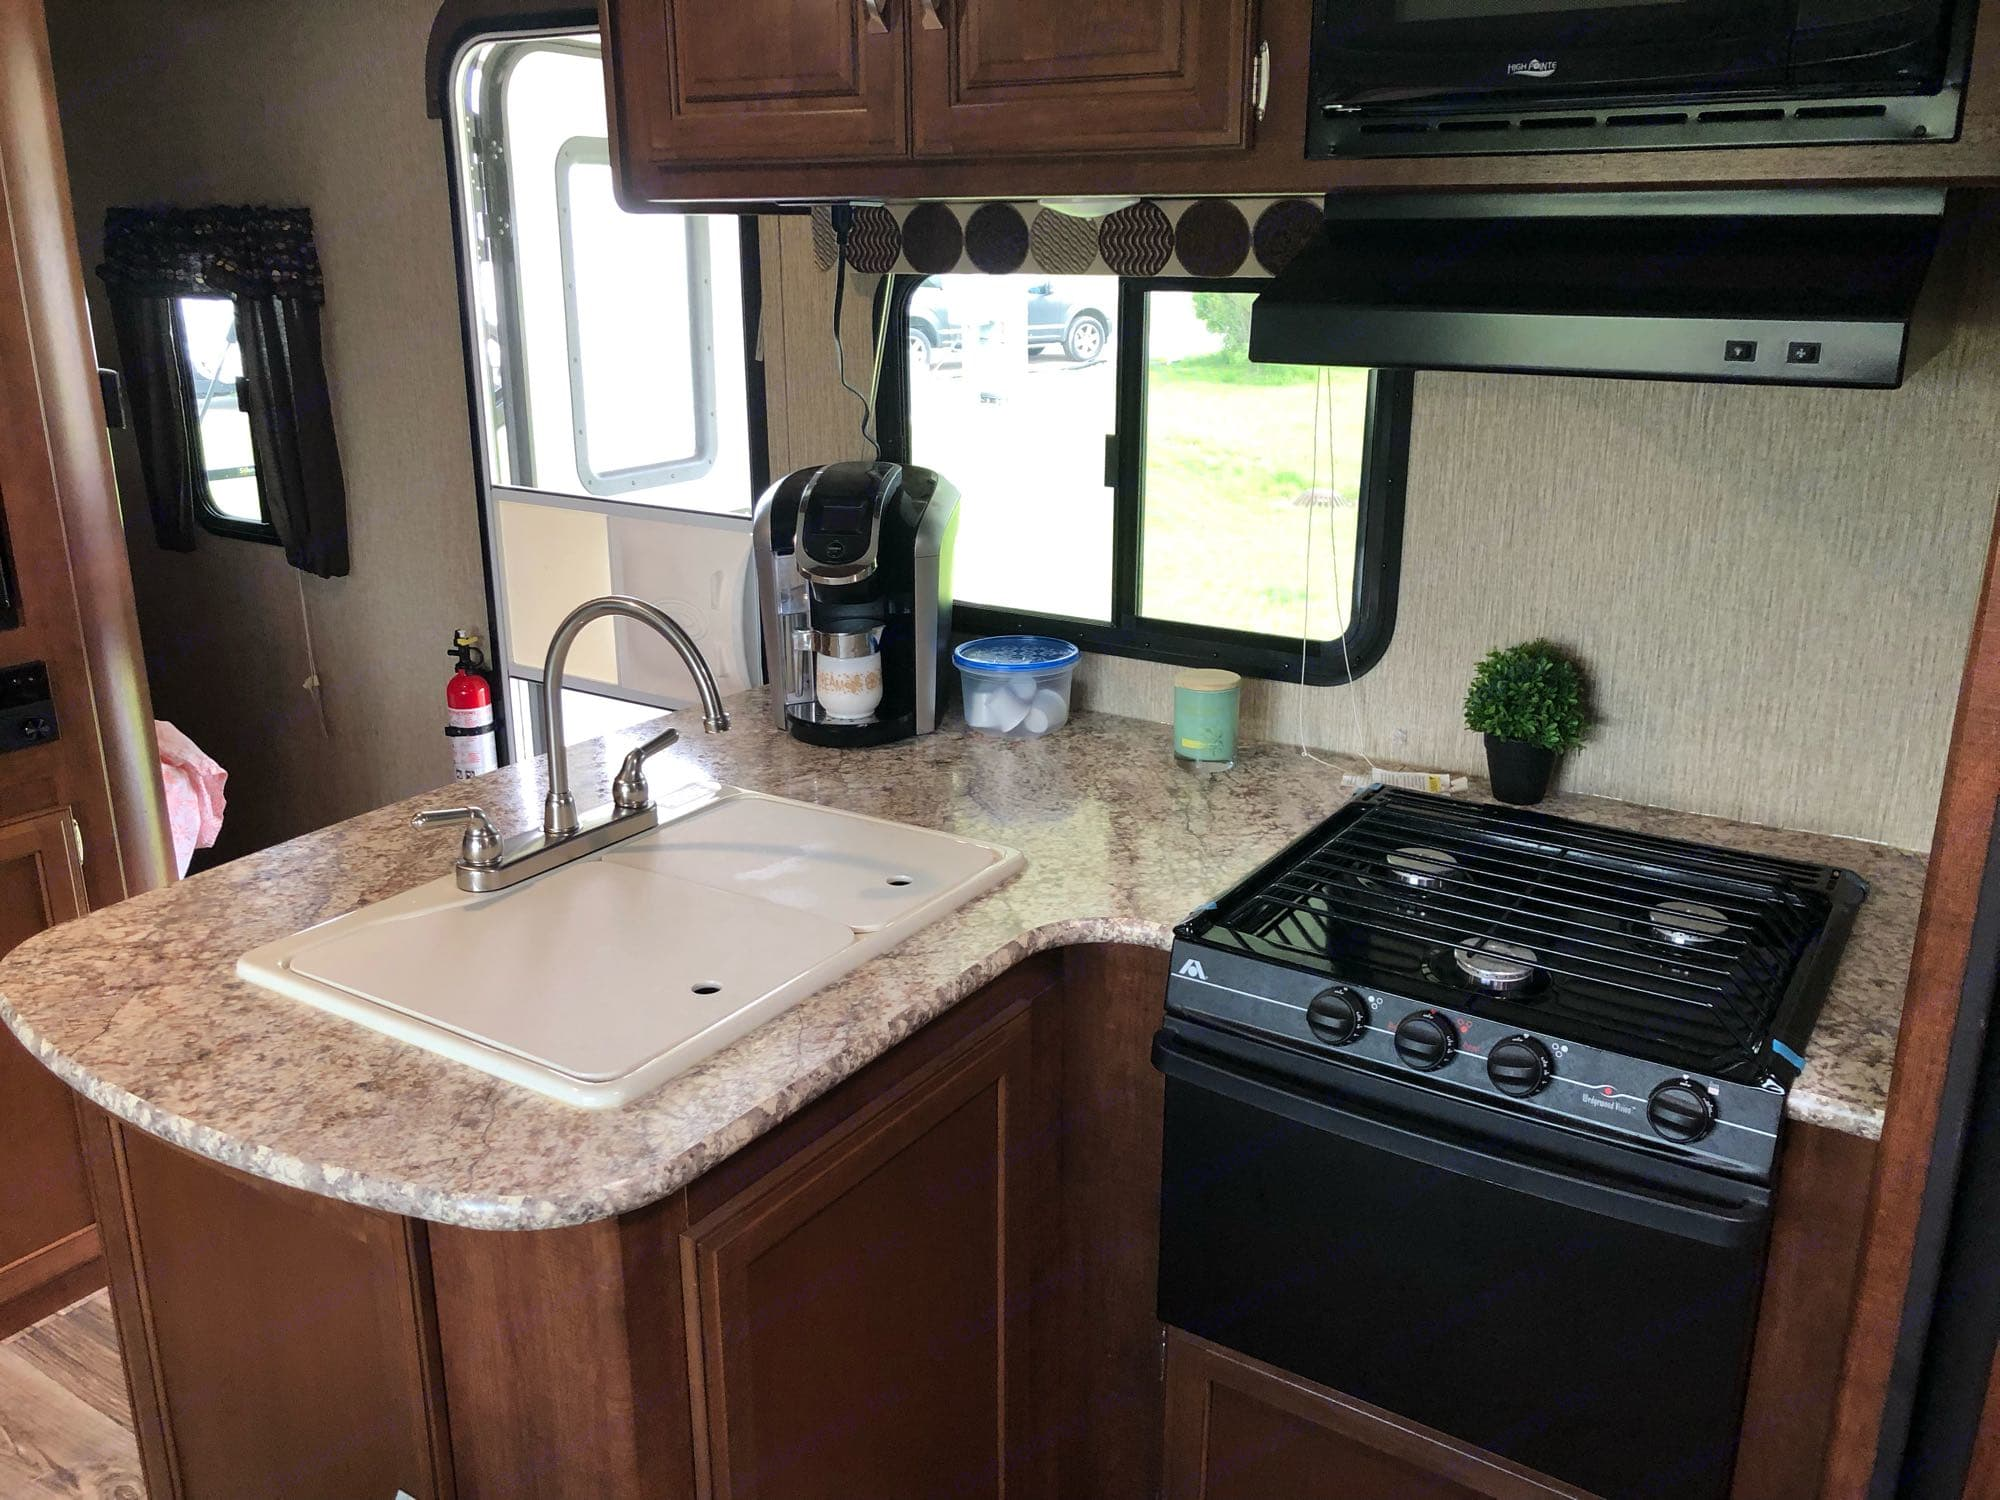 Kitchen area. The Keurig coffee maker is included!  Along with Dishes, cups, and utensils.. Keystone Passport 2017